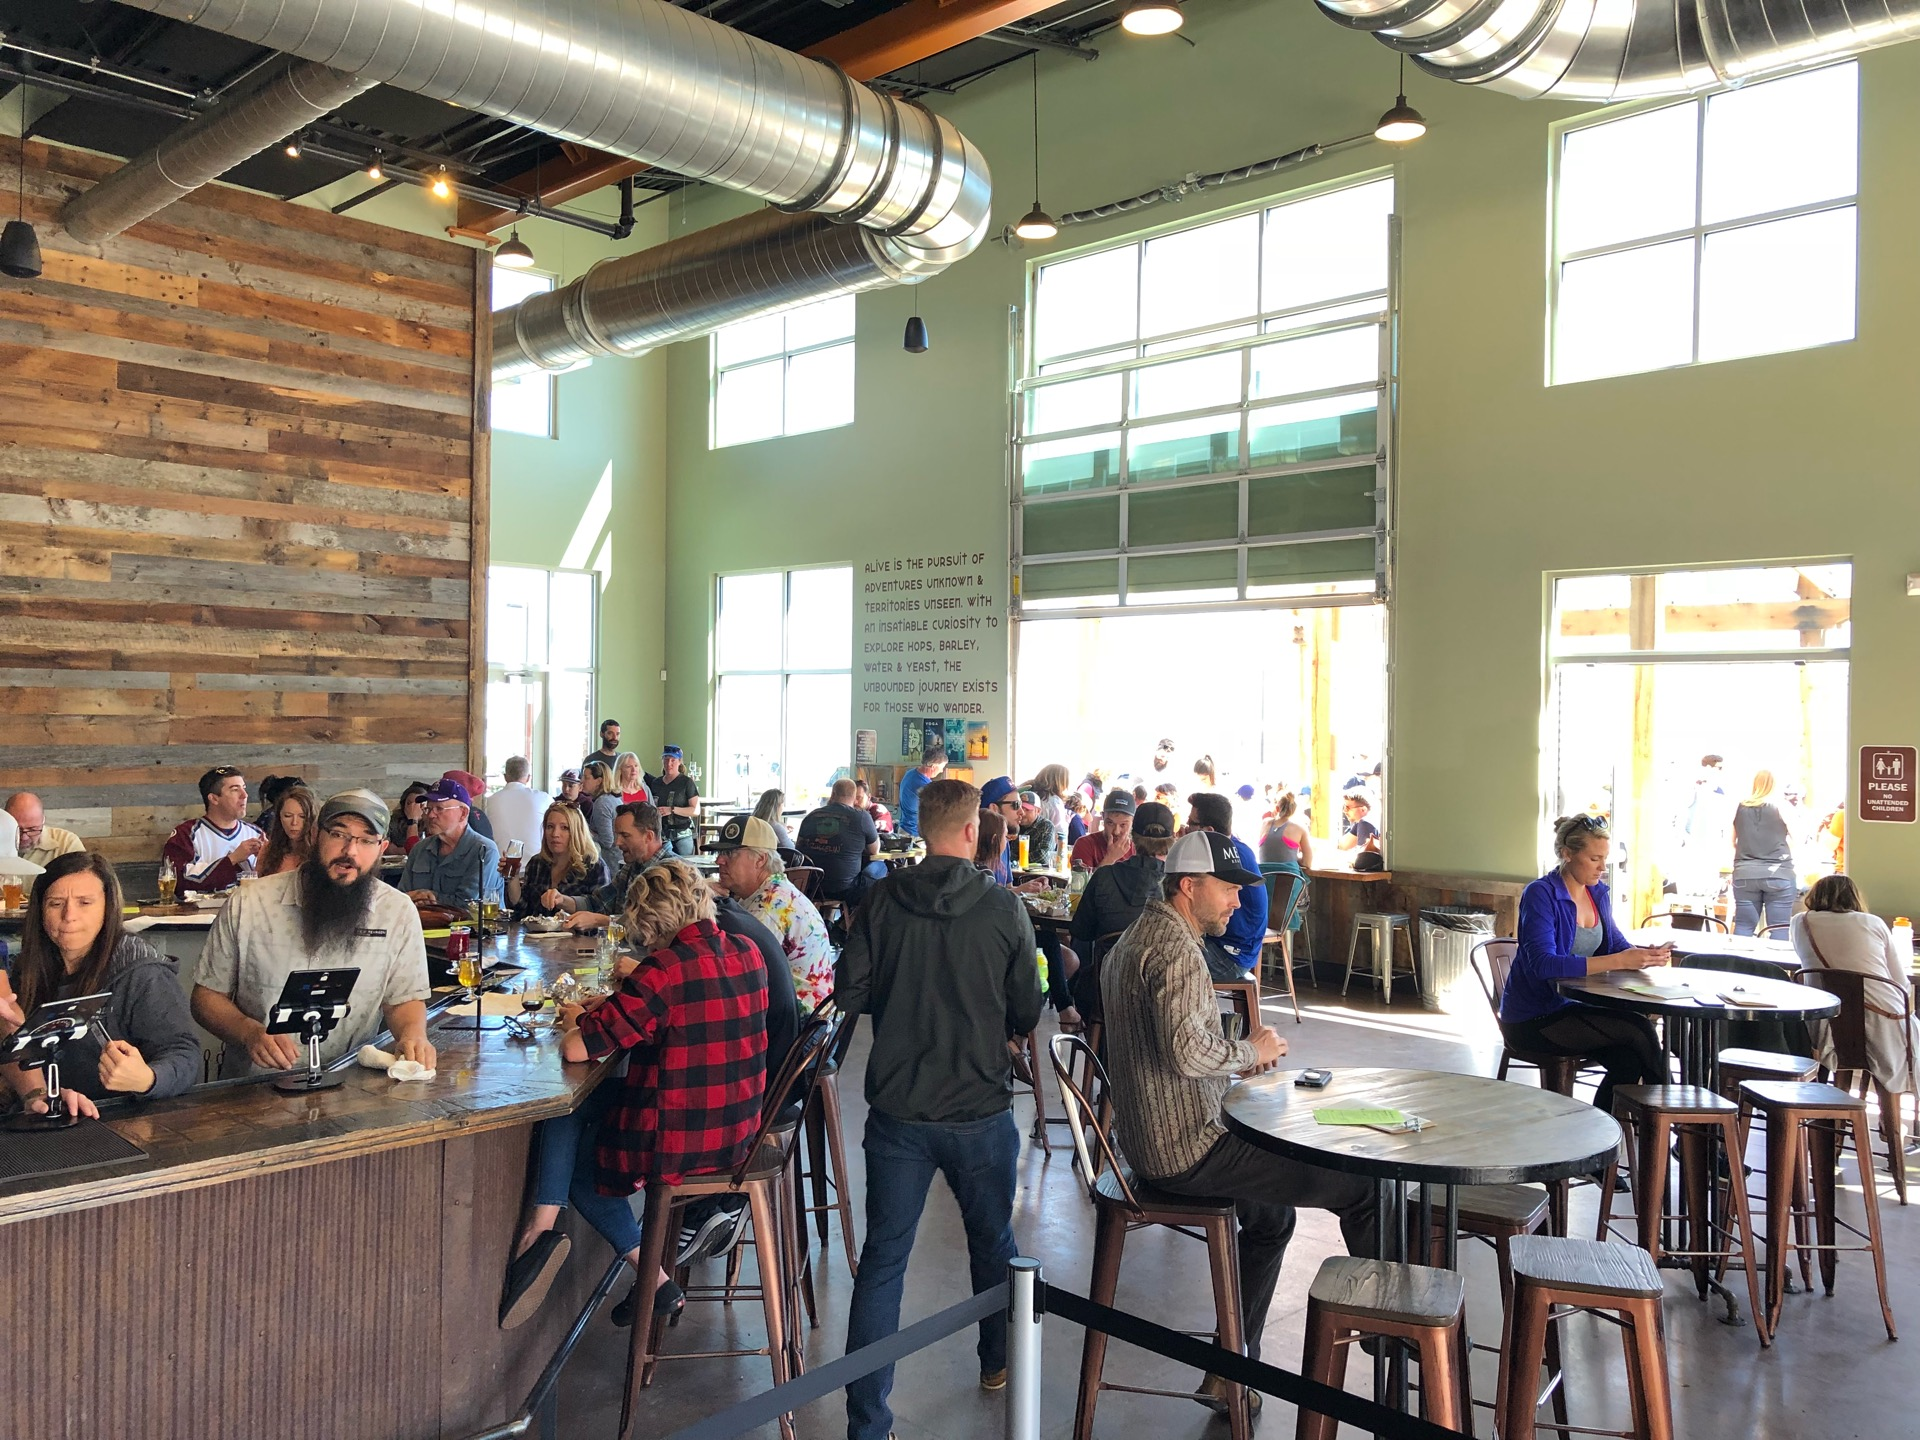 Checked in at New Terrain Brewing Co